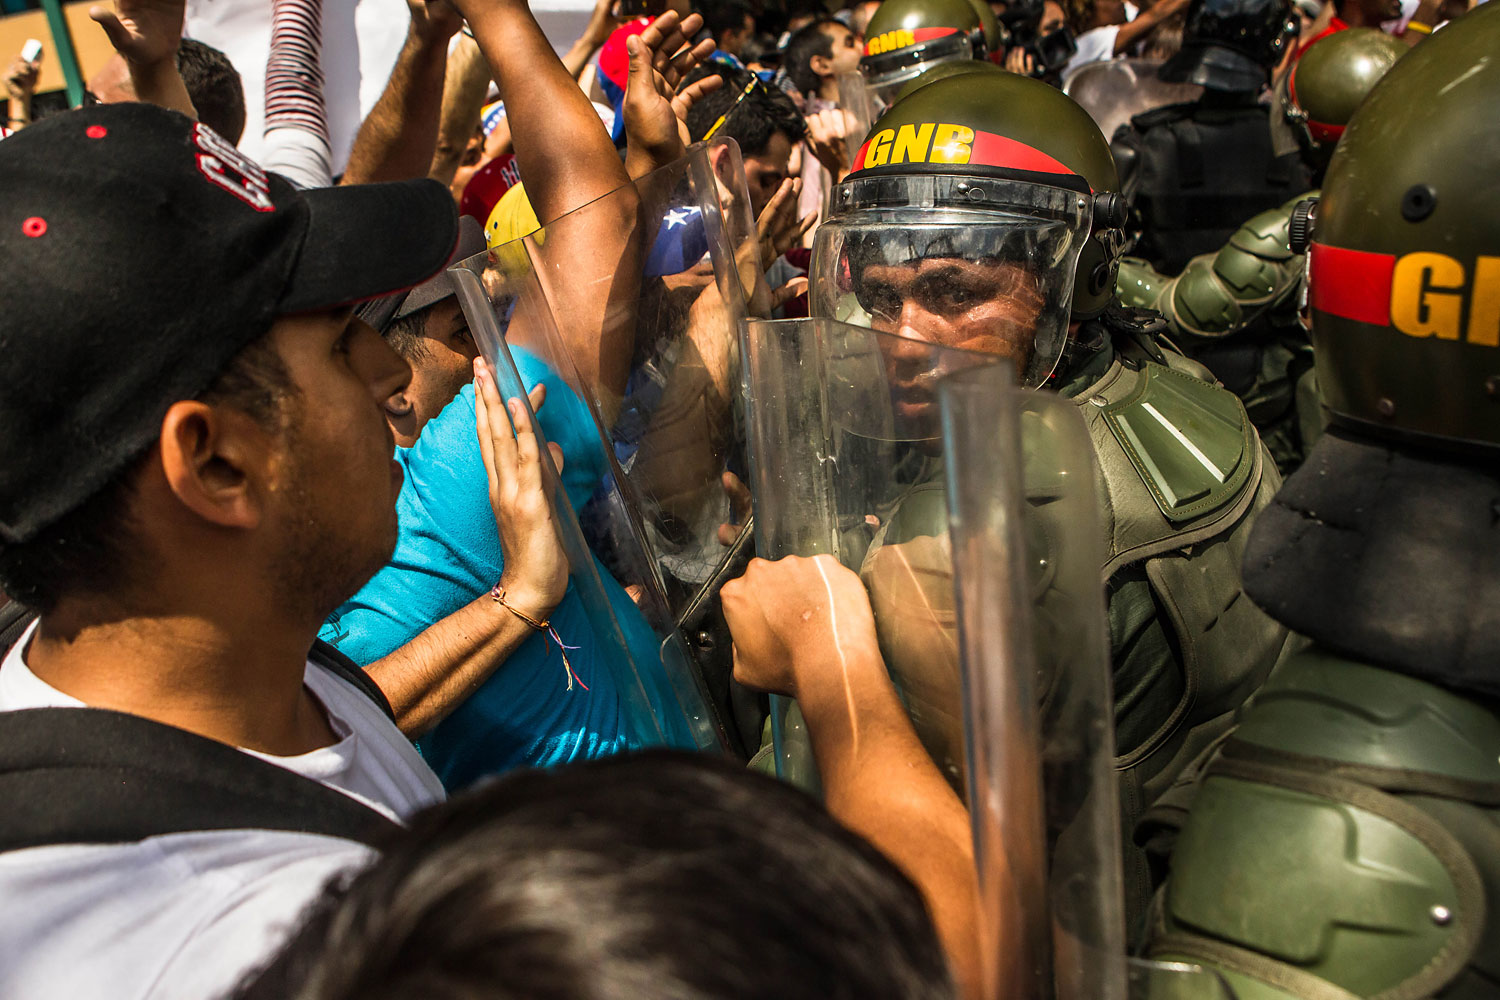 Lopez supporters clash with riot police in effort to block the path of the armored vehicle carrying Leopoldo Lopez after he surrendered to the police, in Caracas, Feb. 18, 2014.